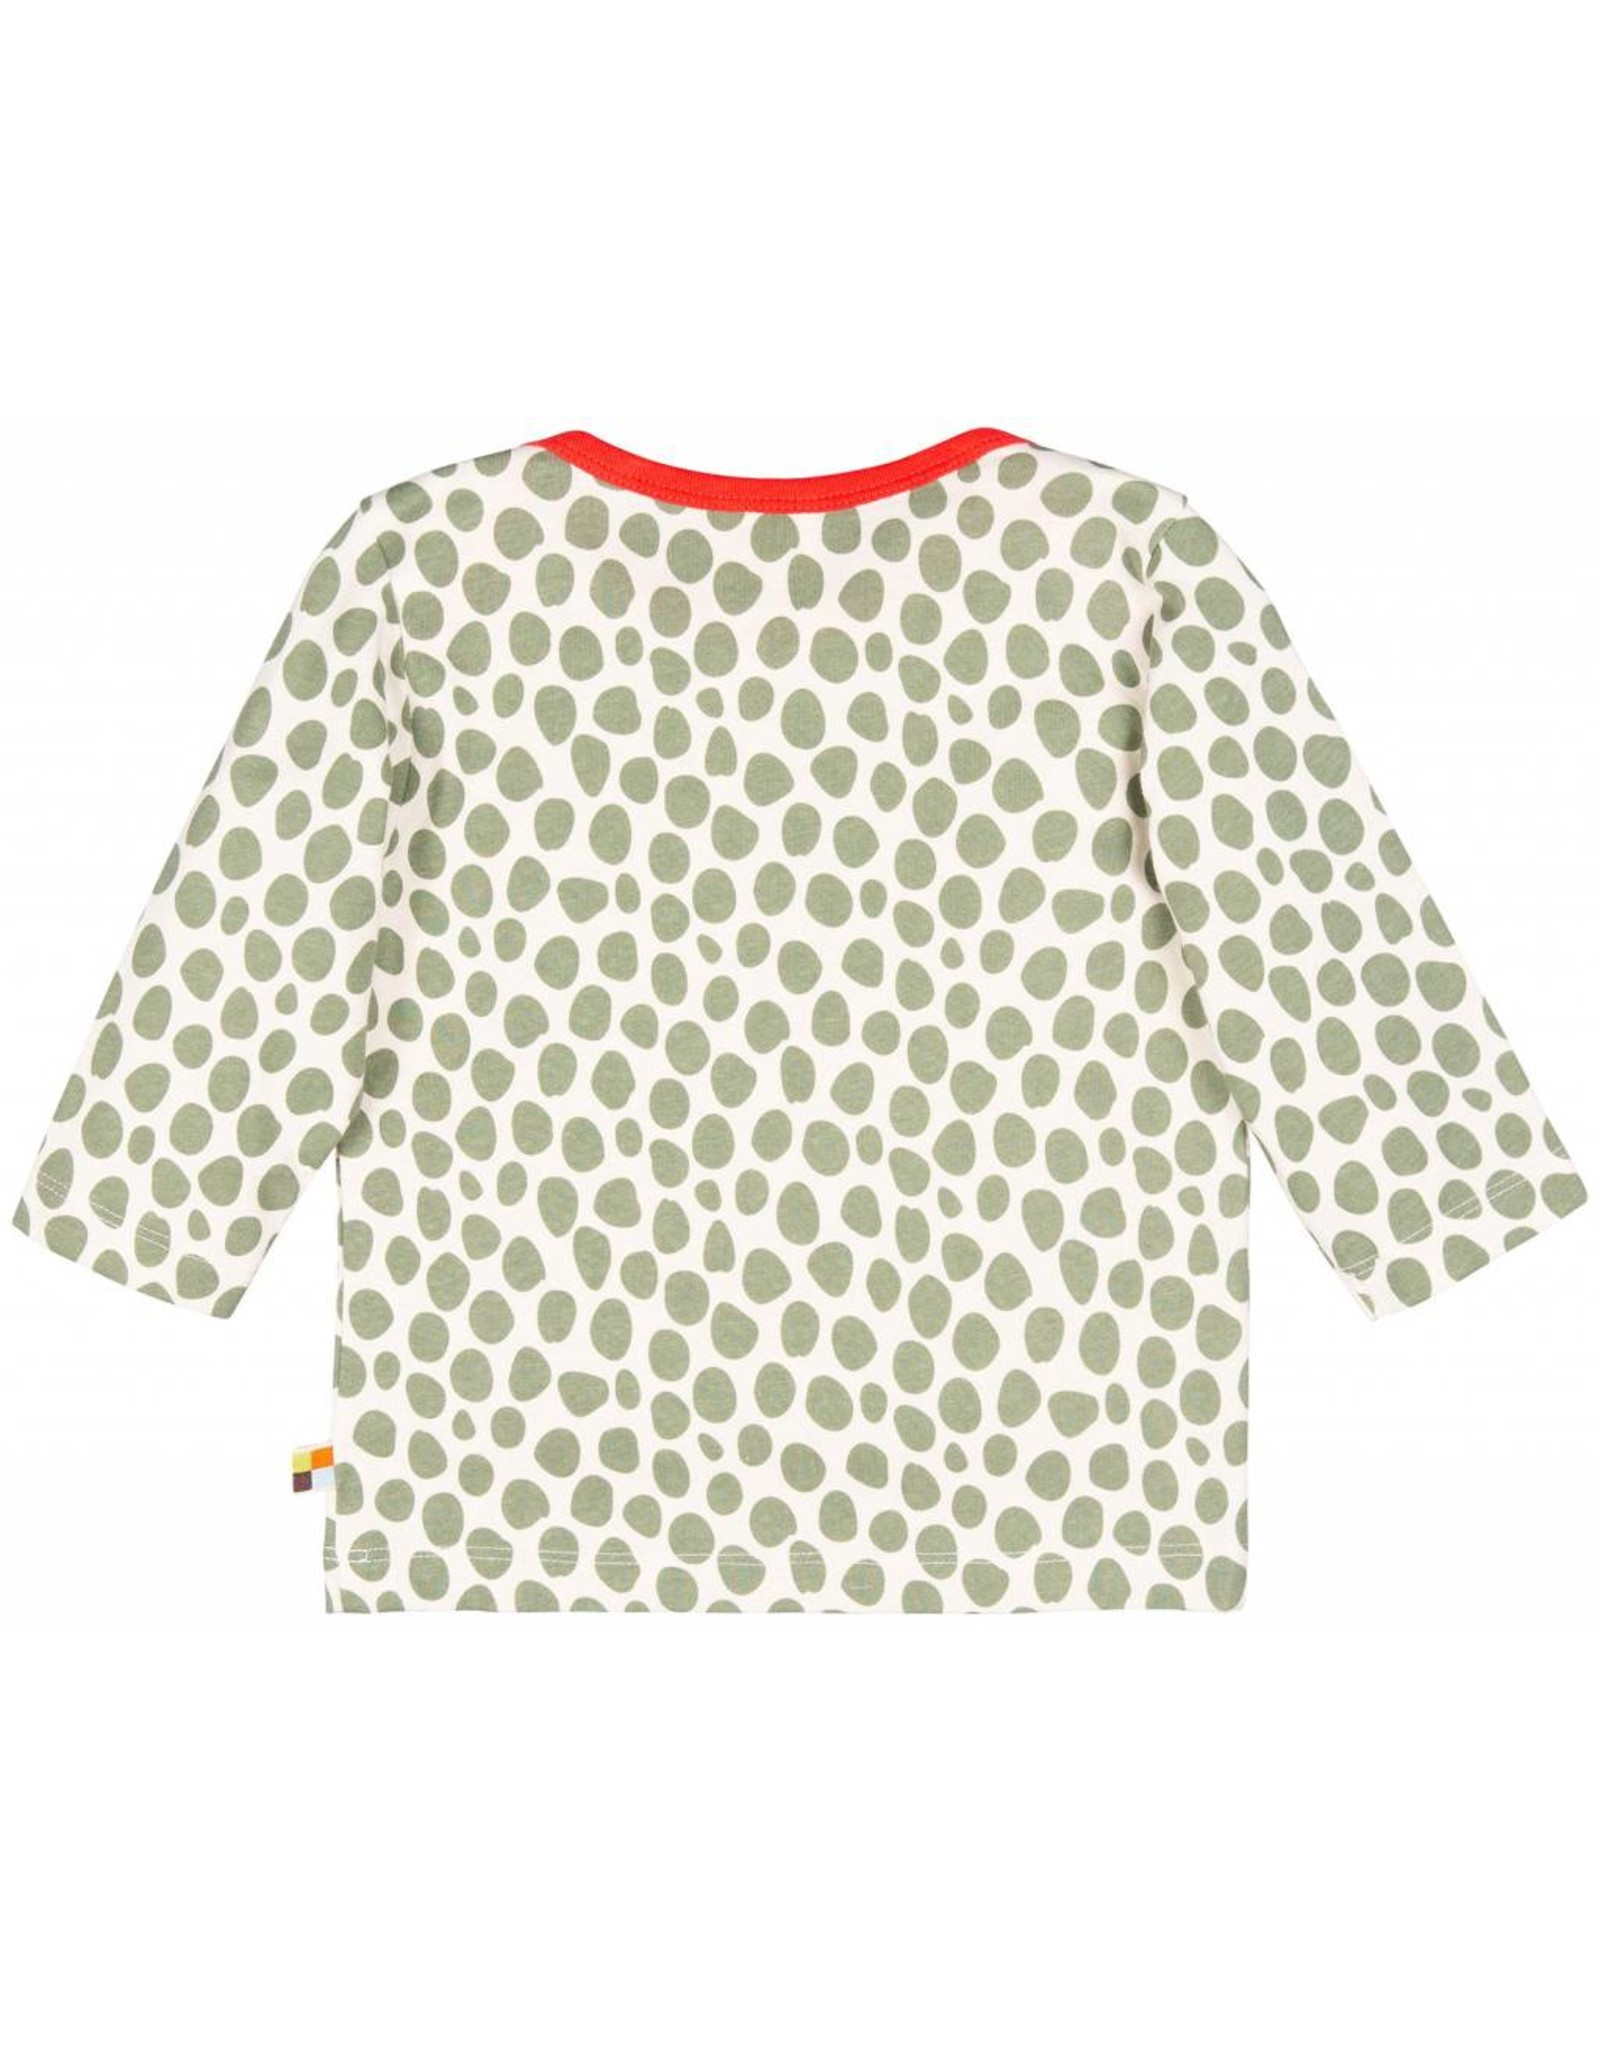 loud+proud Kids shirt - leopard spots